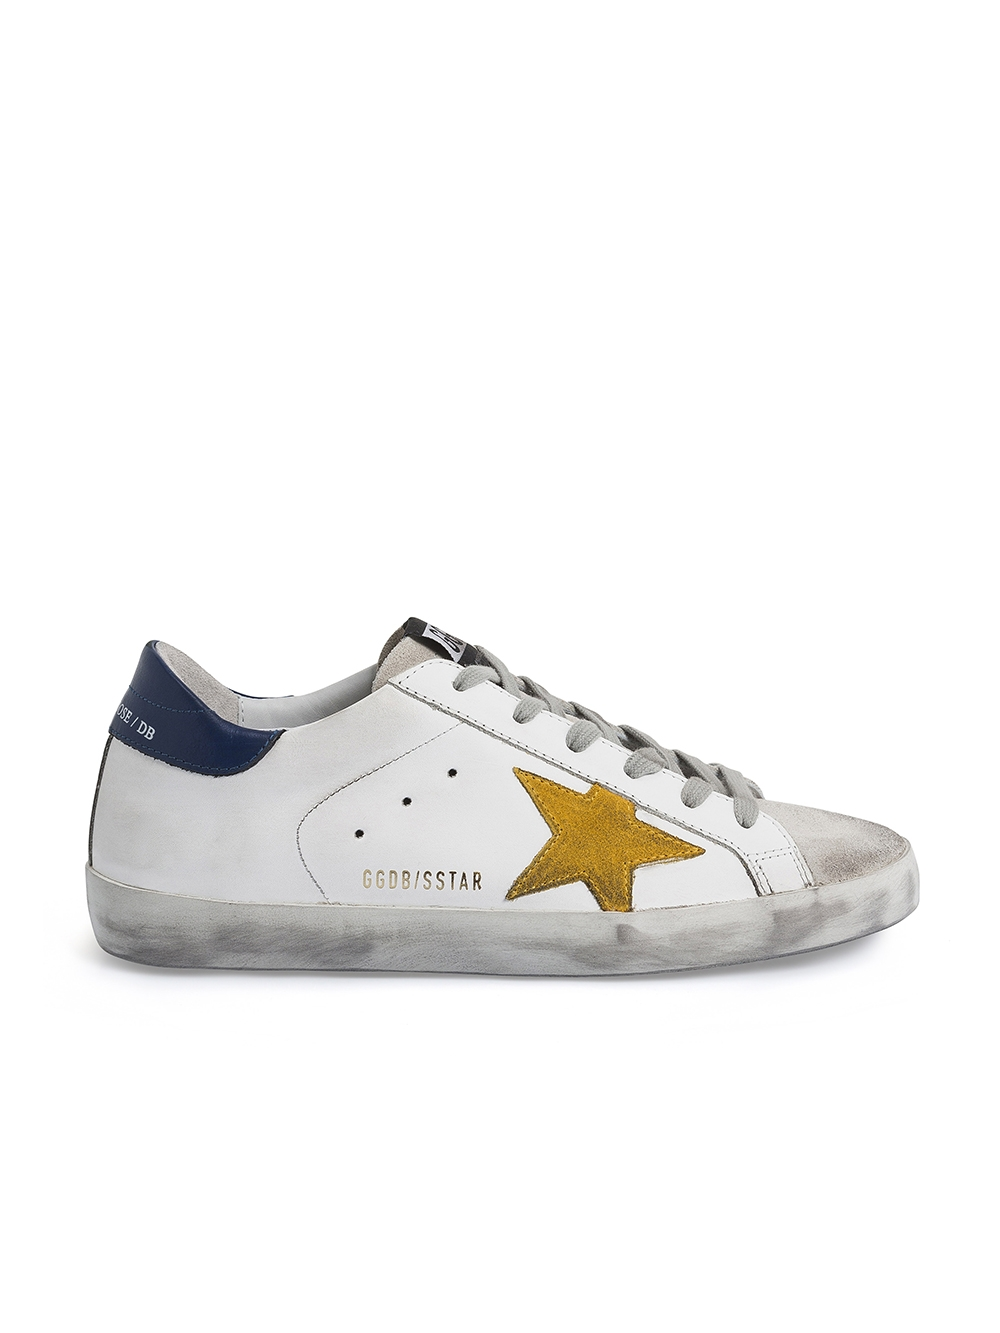 SNEAKERS SUPERSTAR WHITE BLUE